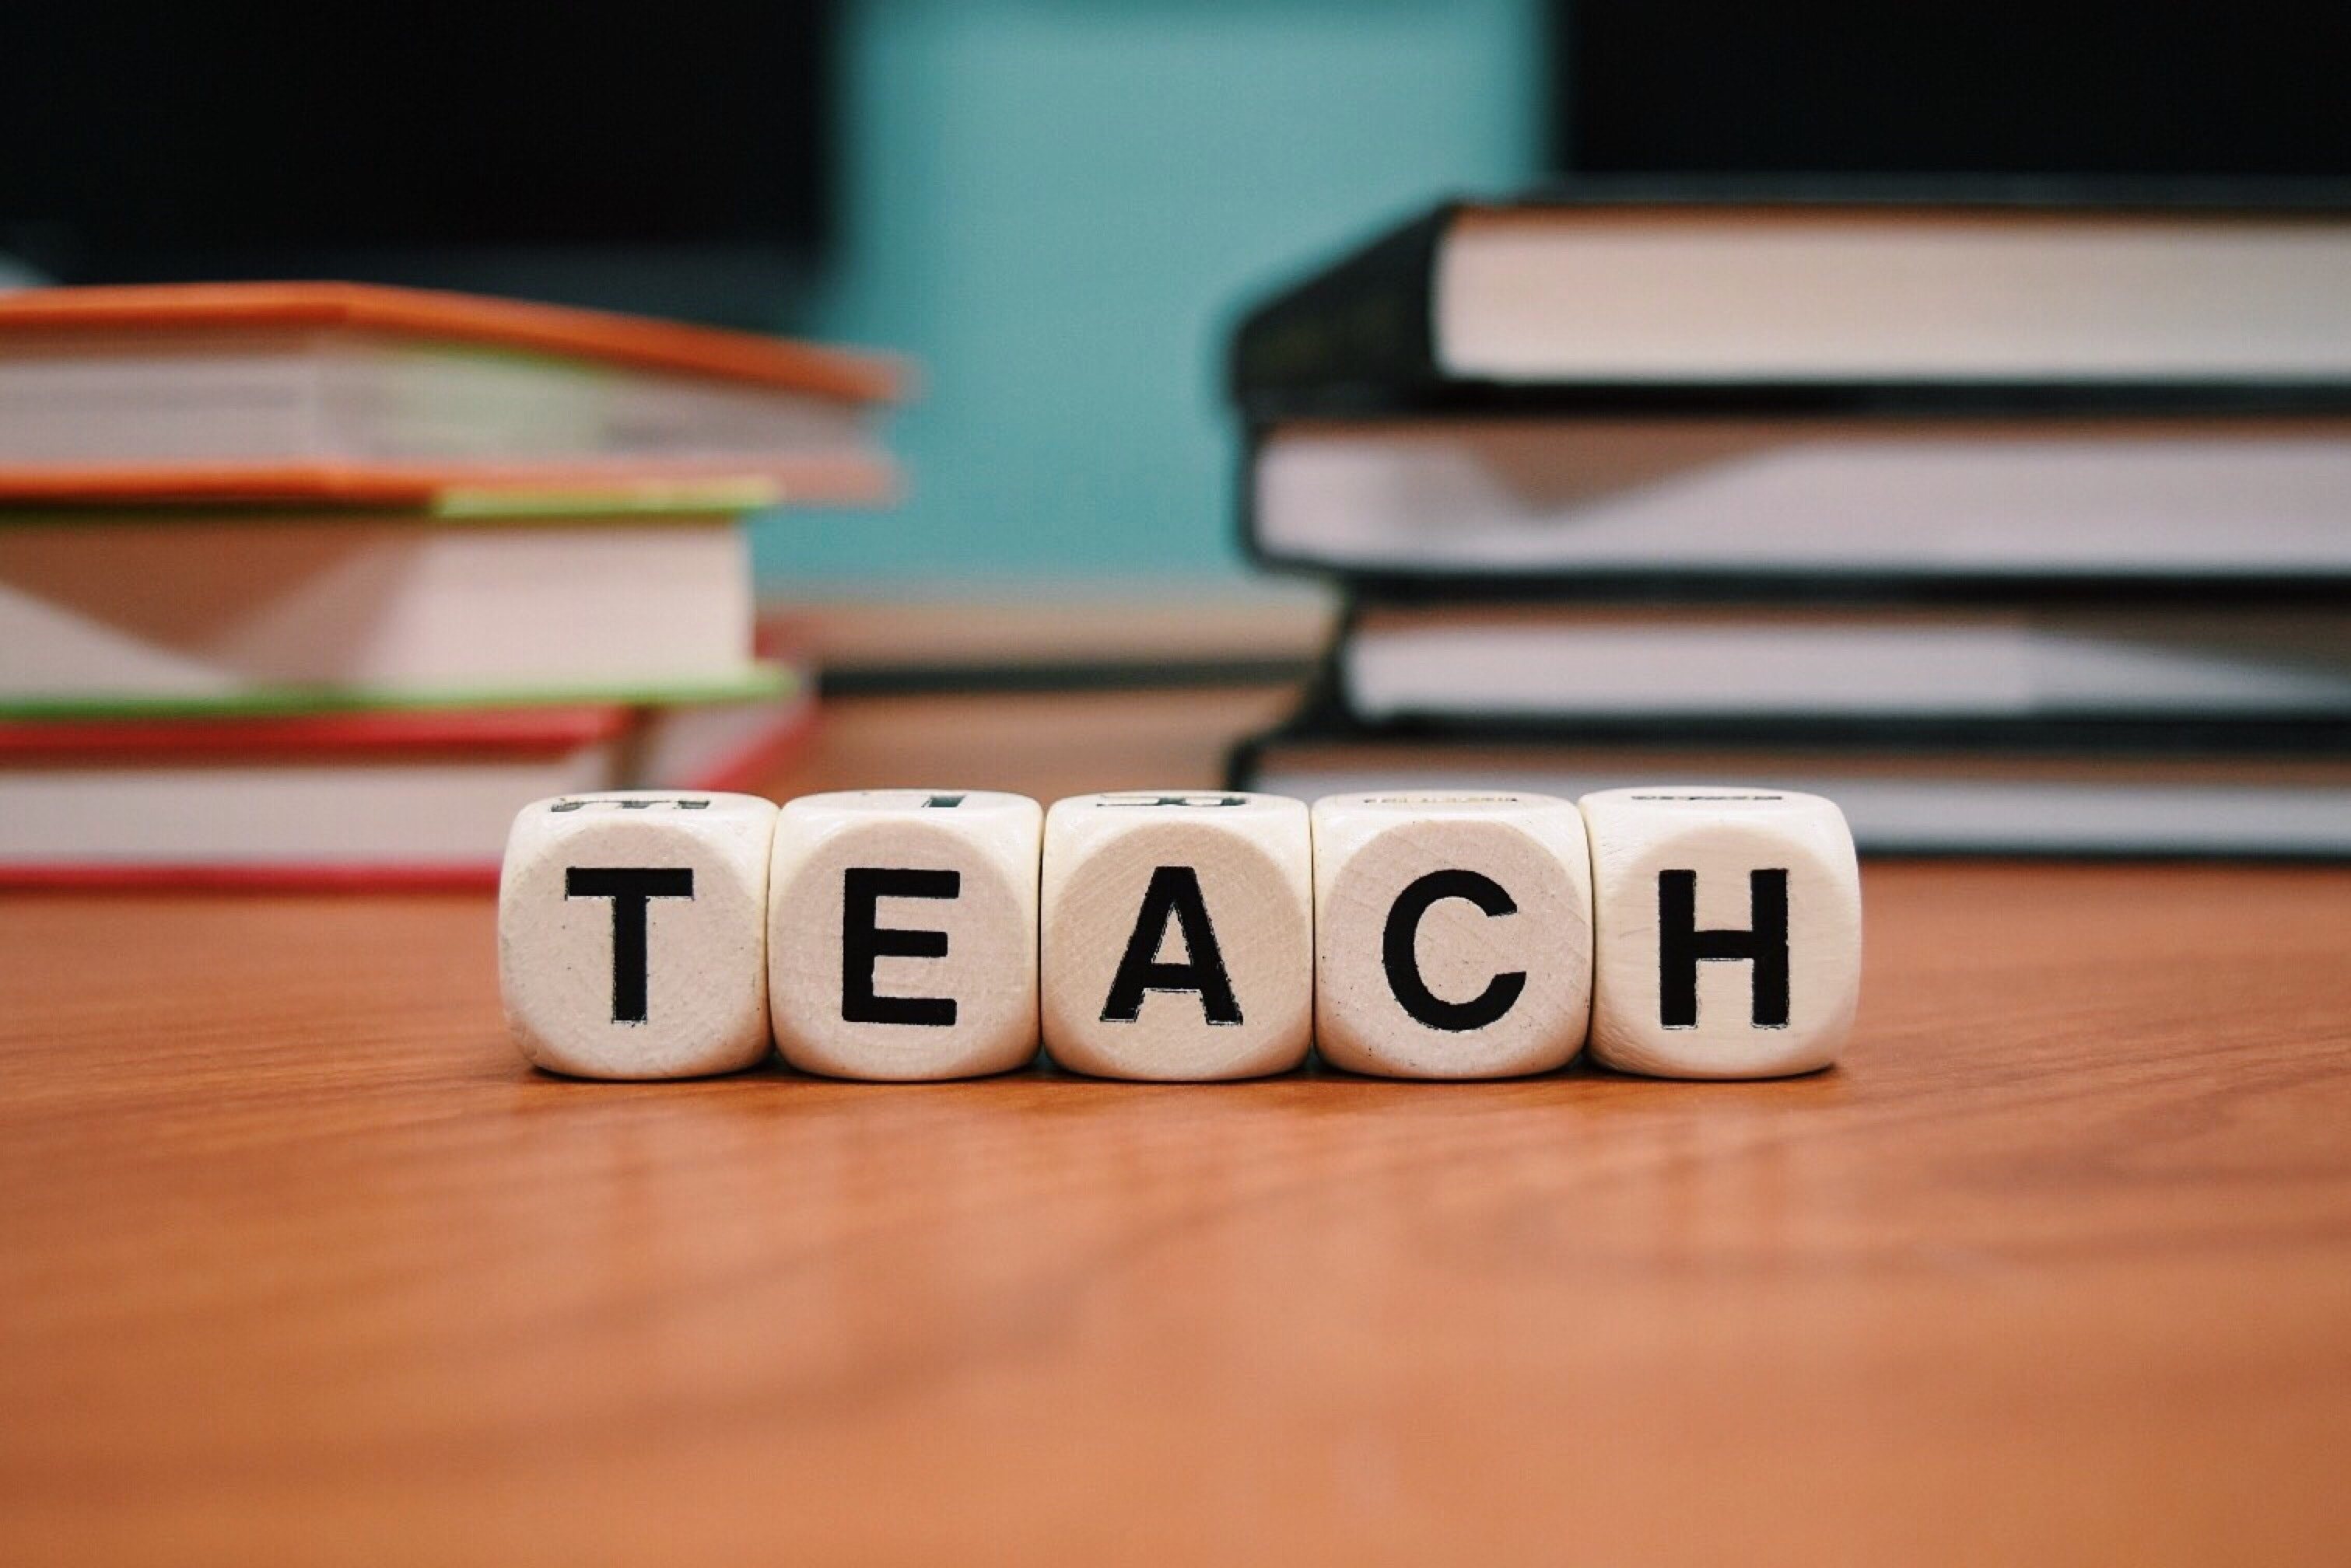 The word TEACH in a stock photo image